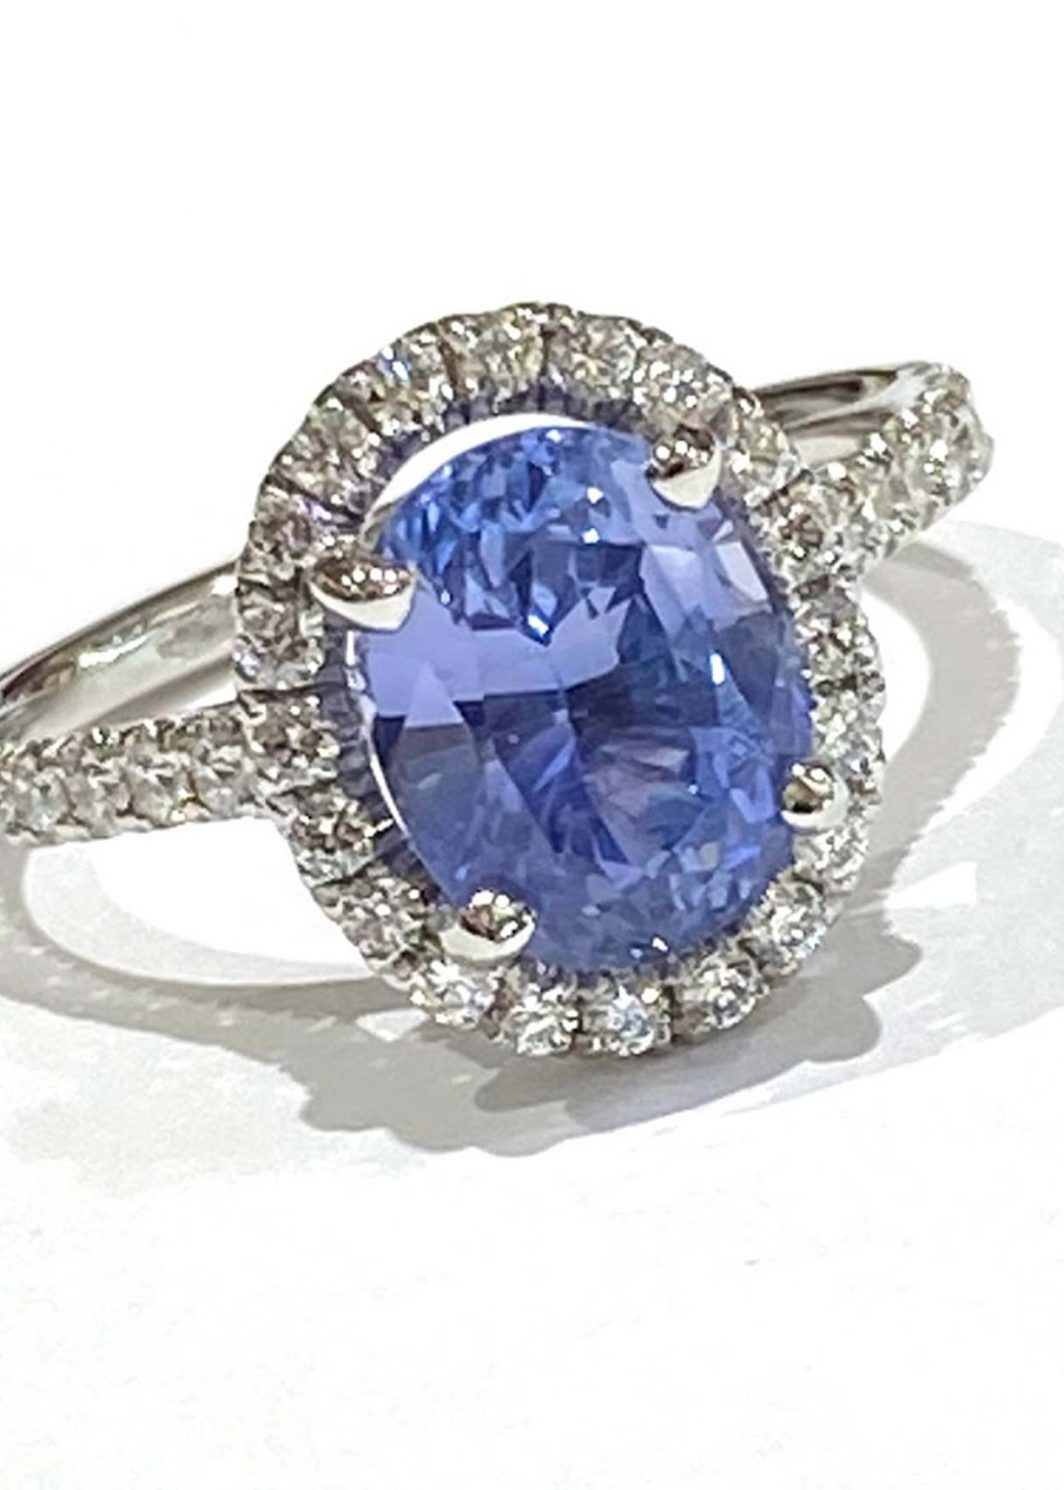 Ladys Diamond and Sapphire Ring